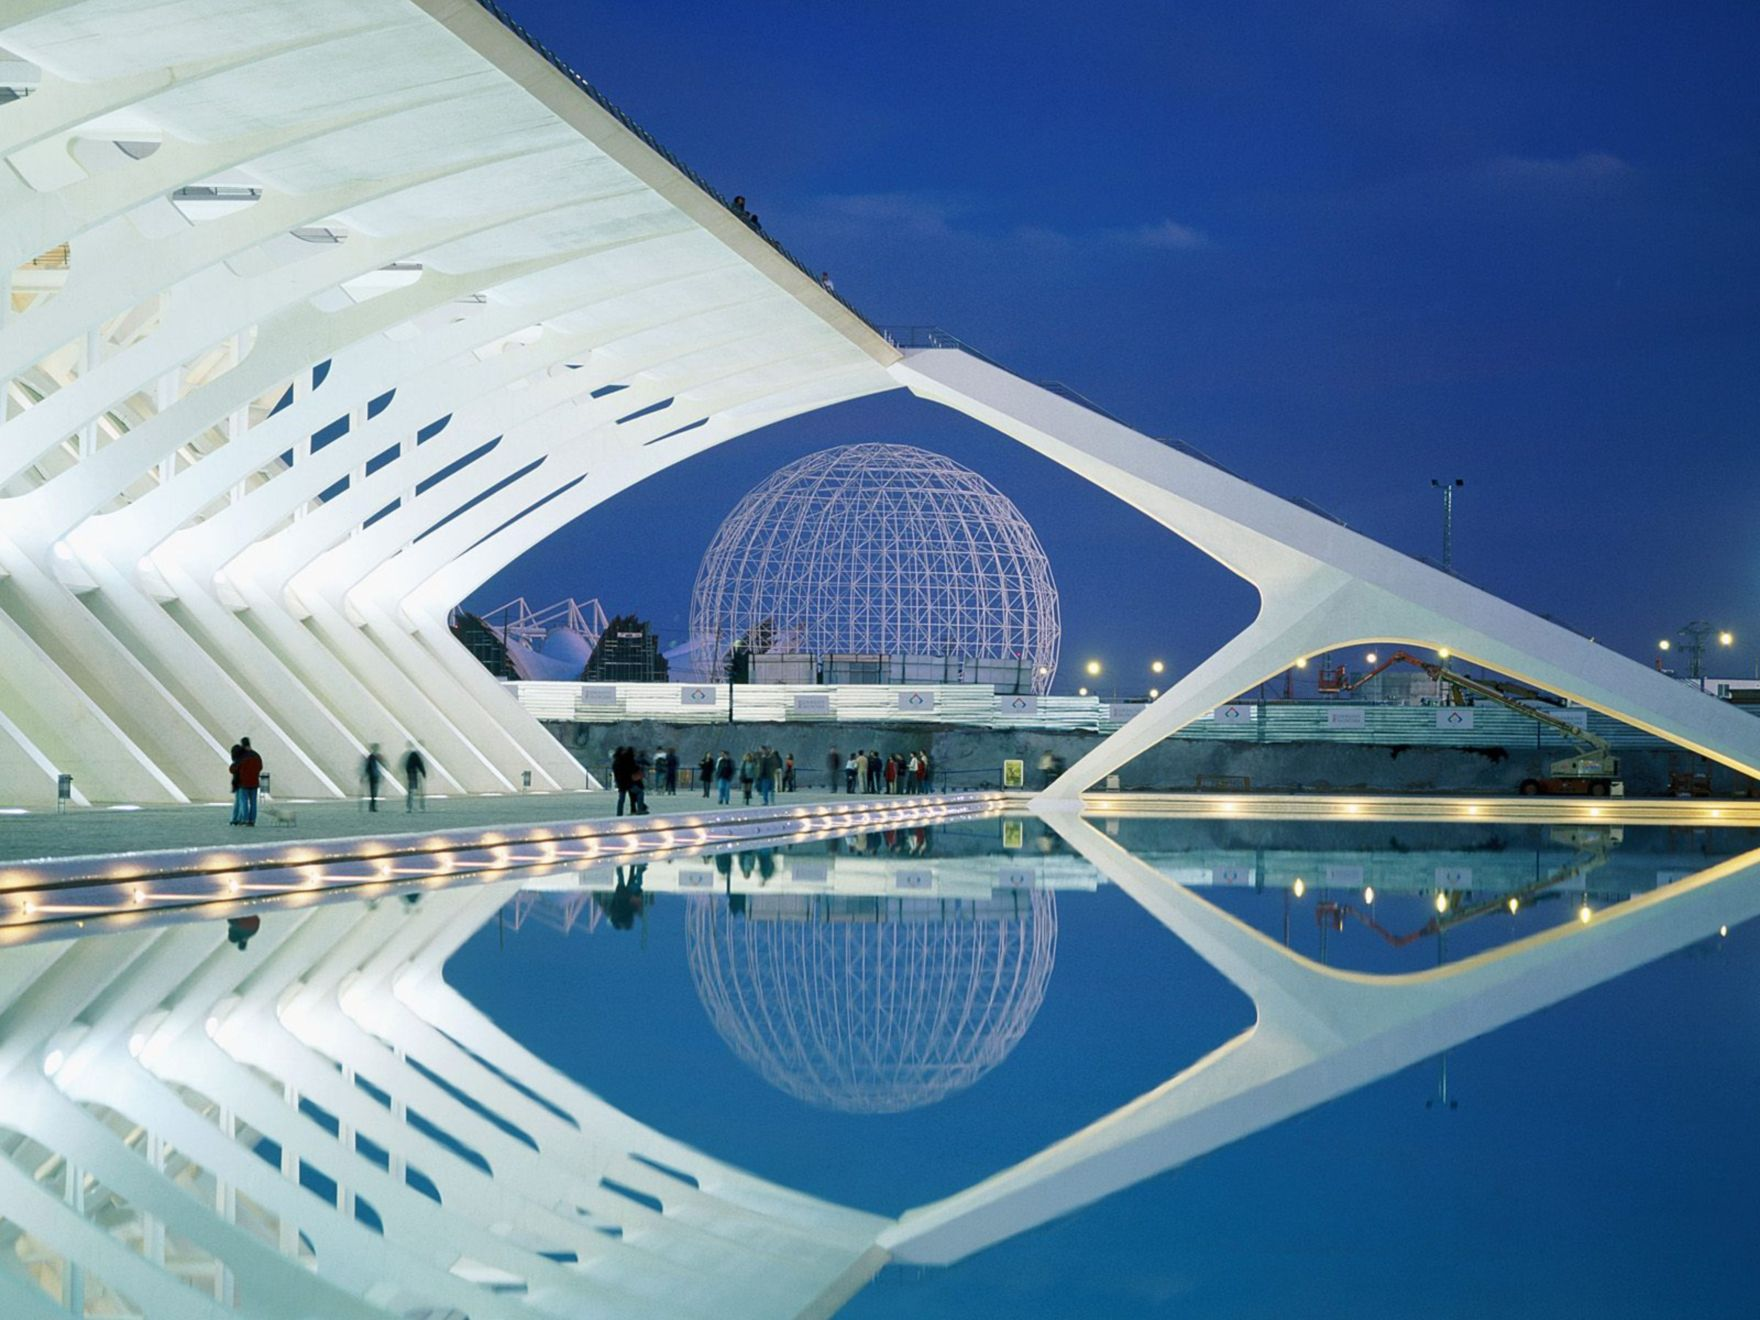 Download free HD City of Arts and Sciences Spain Normal Wallpaper, image